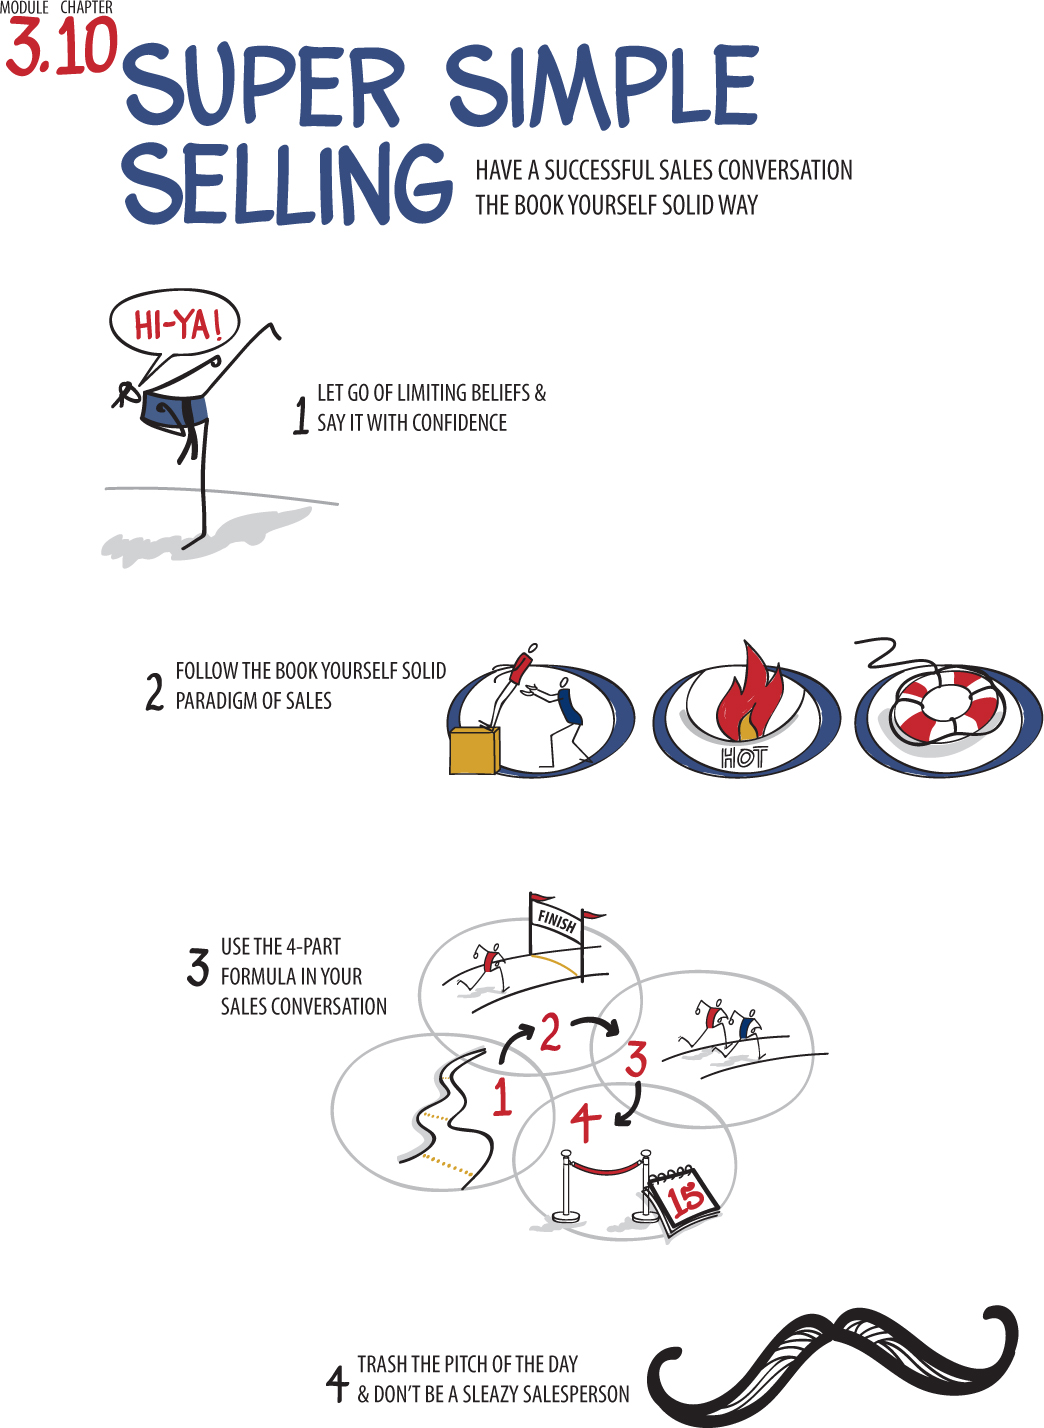 Chapter 10 super simple selling book yourself solid illustrated 310 super simple selling solutioingenieria Choice Image